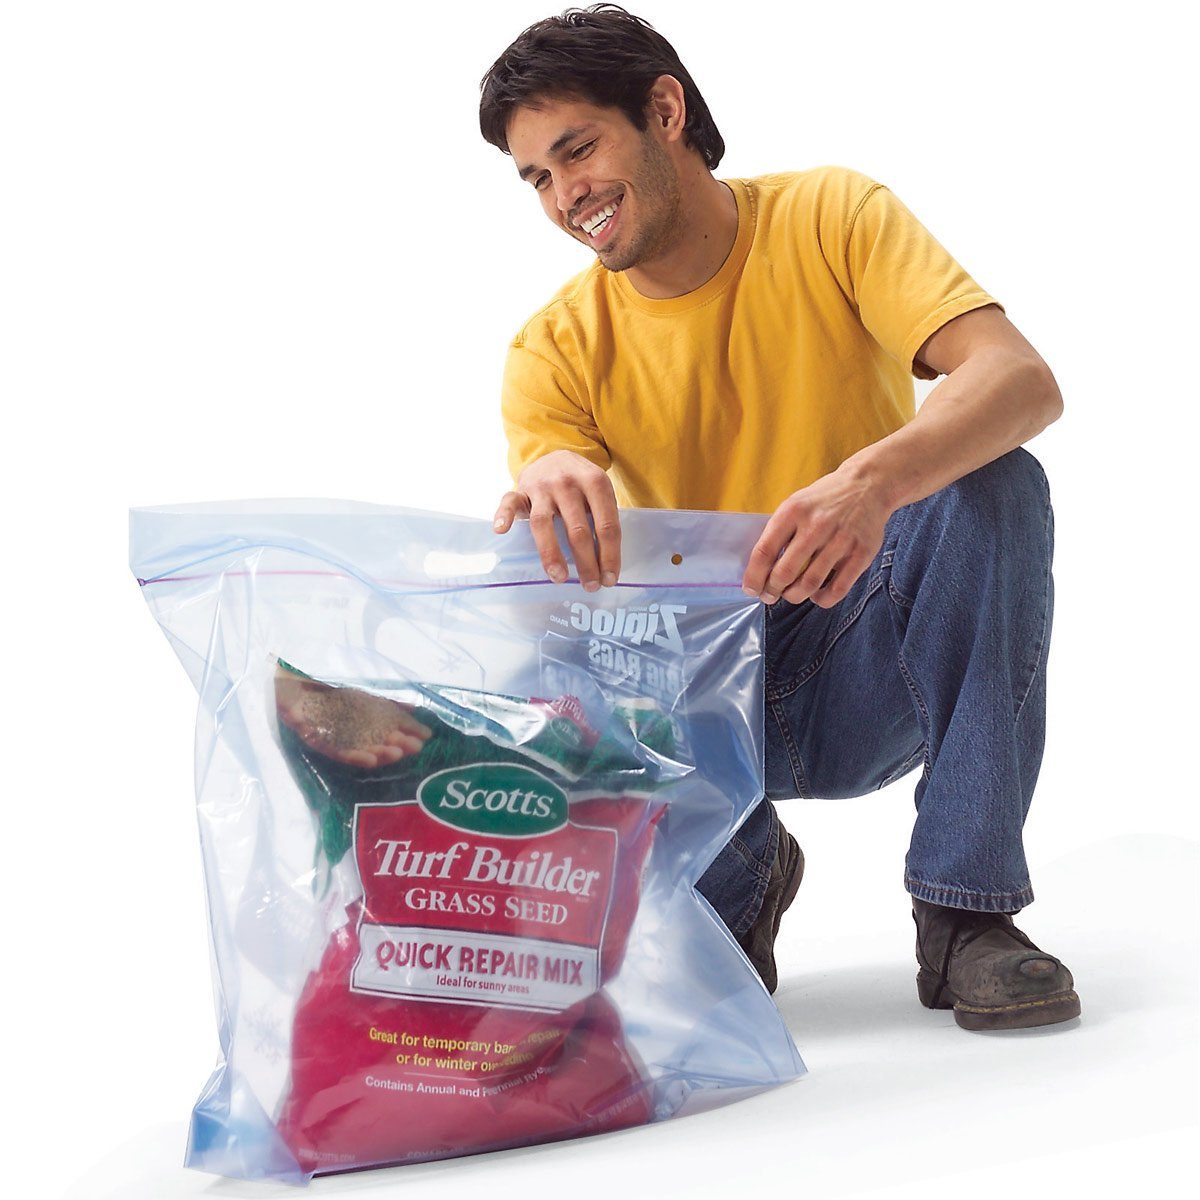 lawn products in plastic bag